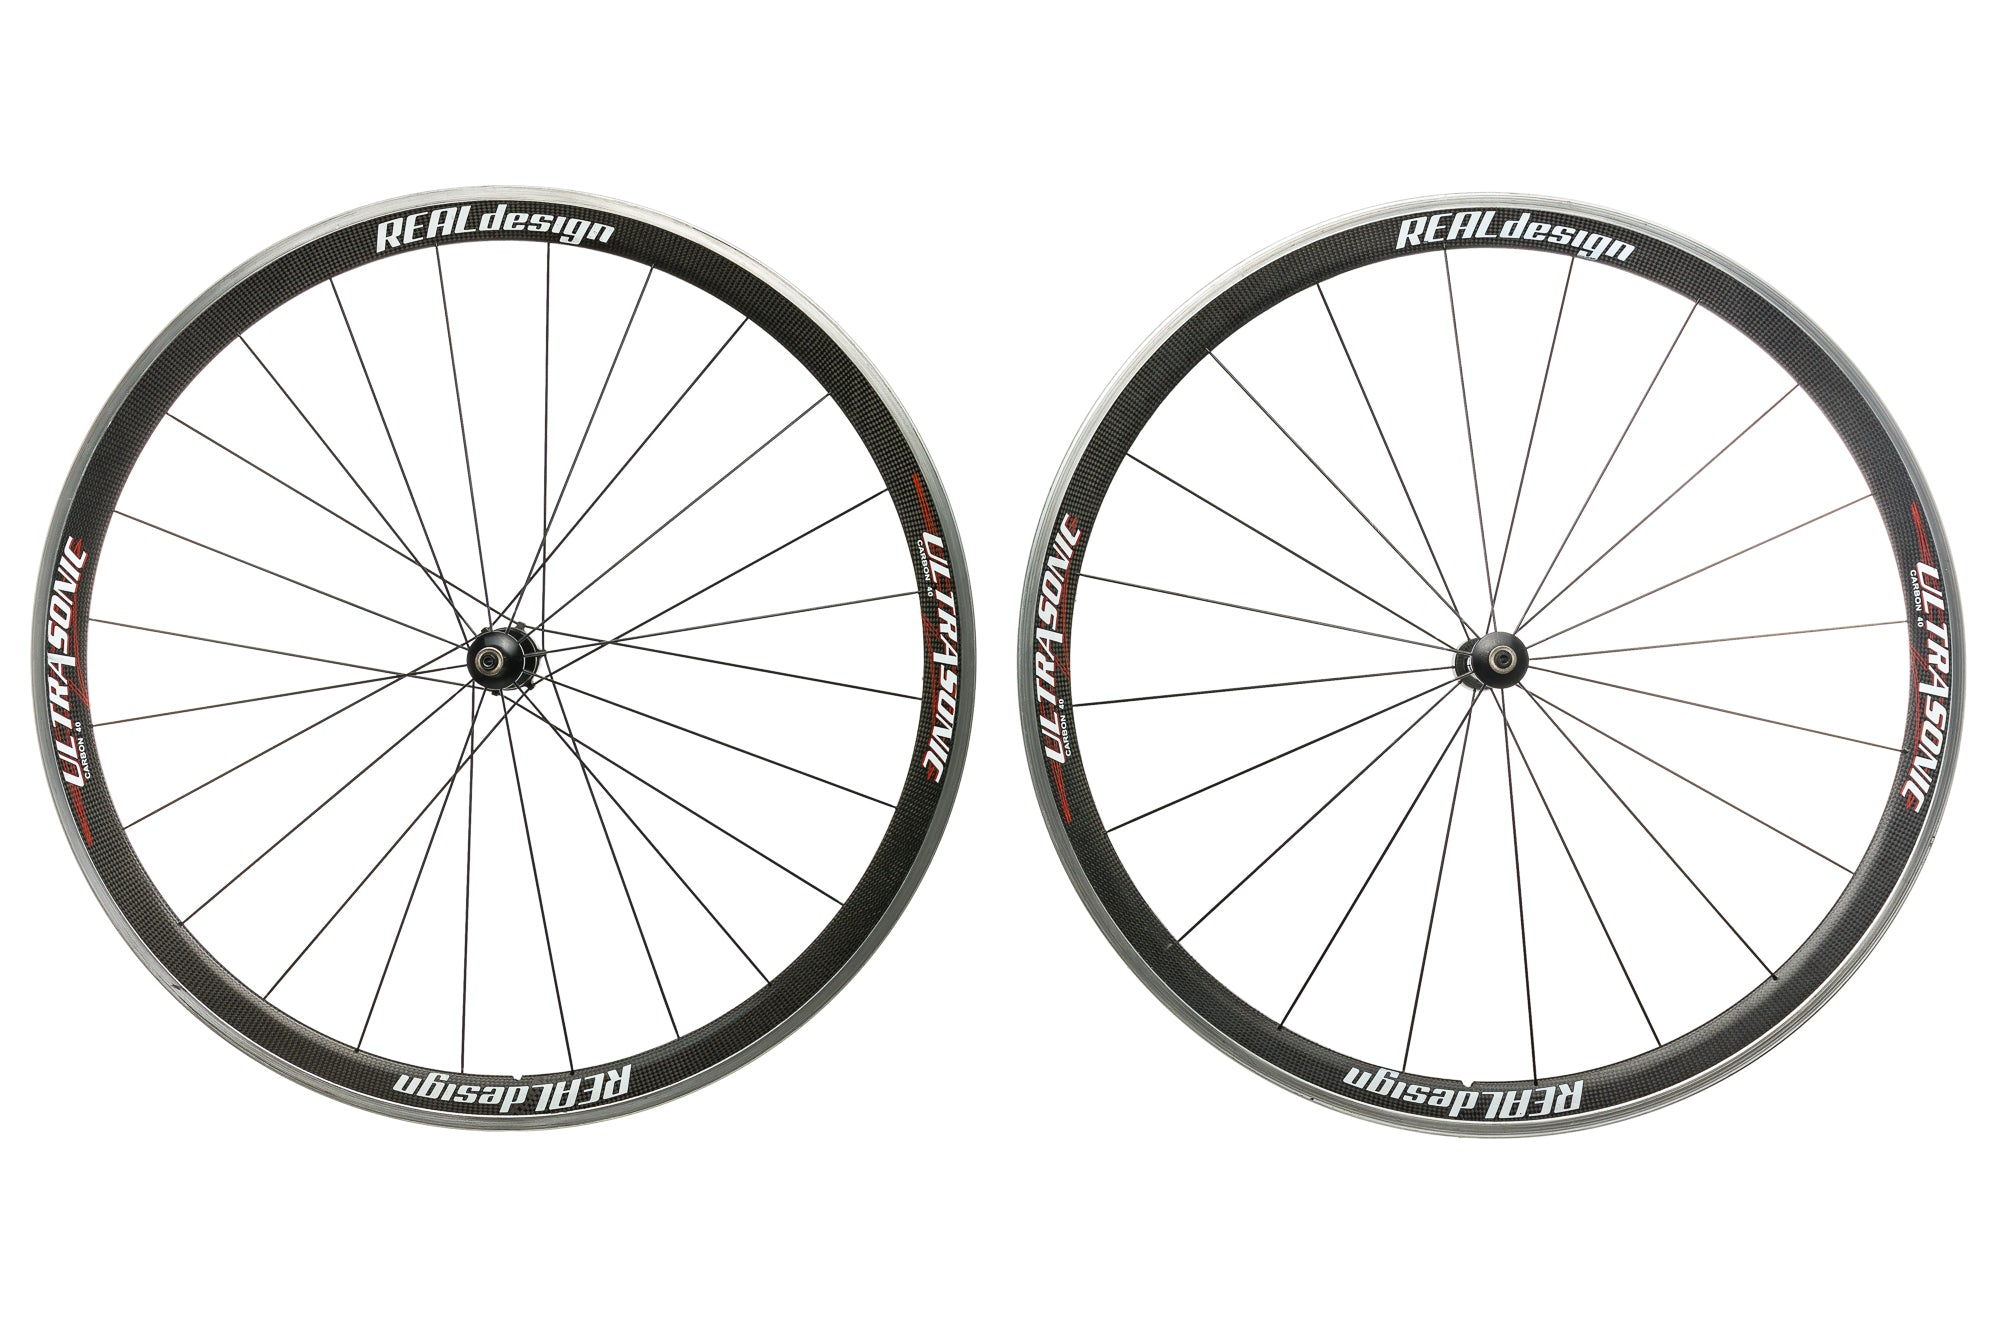 Real Design Ultrasonic 40 Carbon Clincher 700c Wheelset